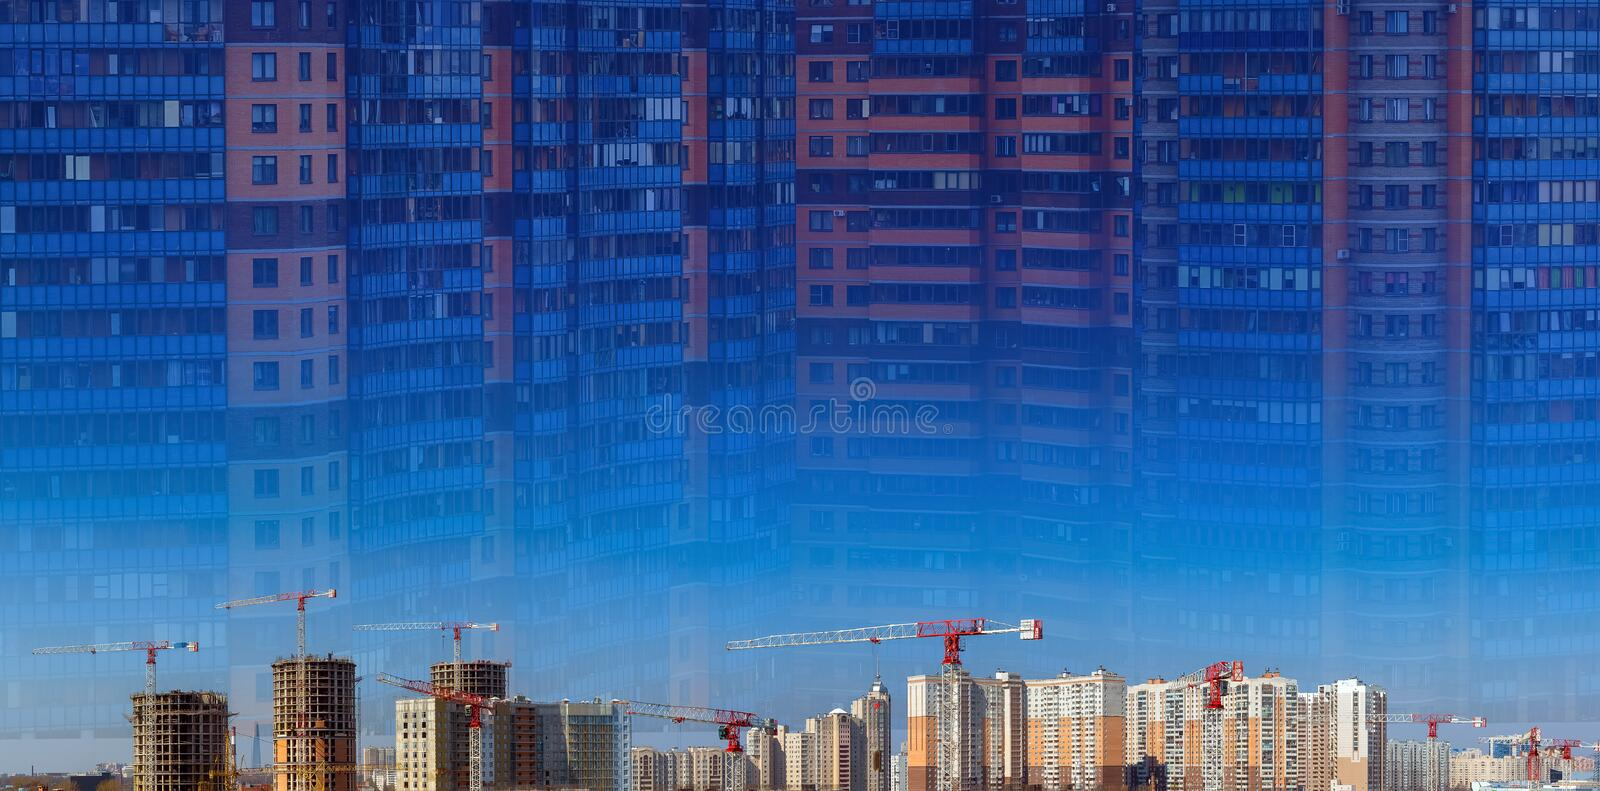 Collage of large construction site including several cranes working on a building complex, workers, construction gear. Tools and equipment, trucks and blue sky royalty free stock image